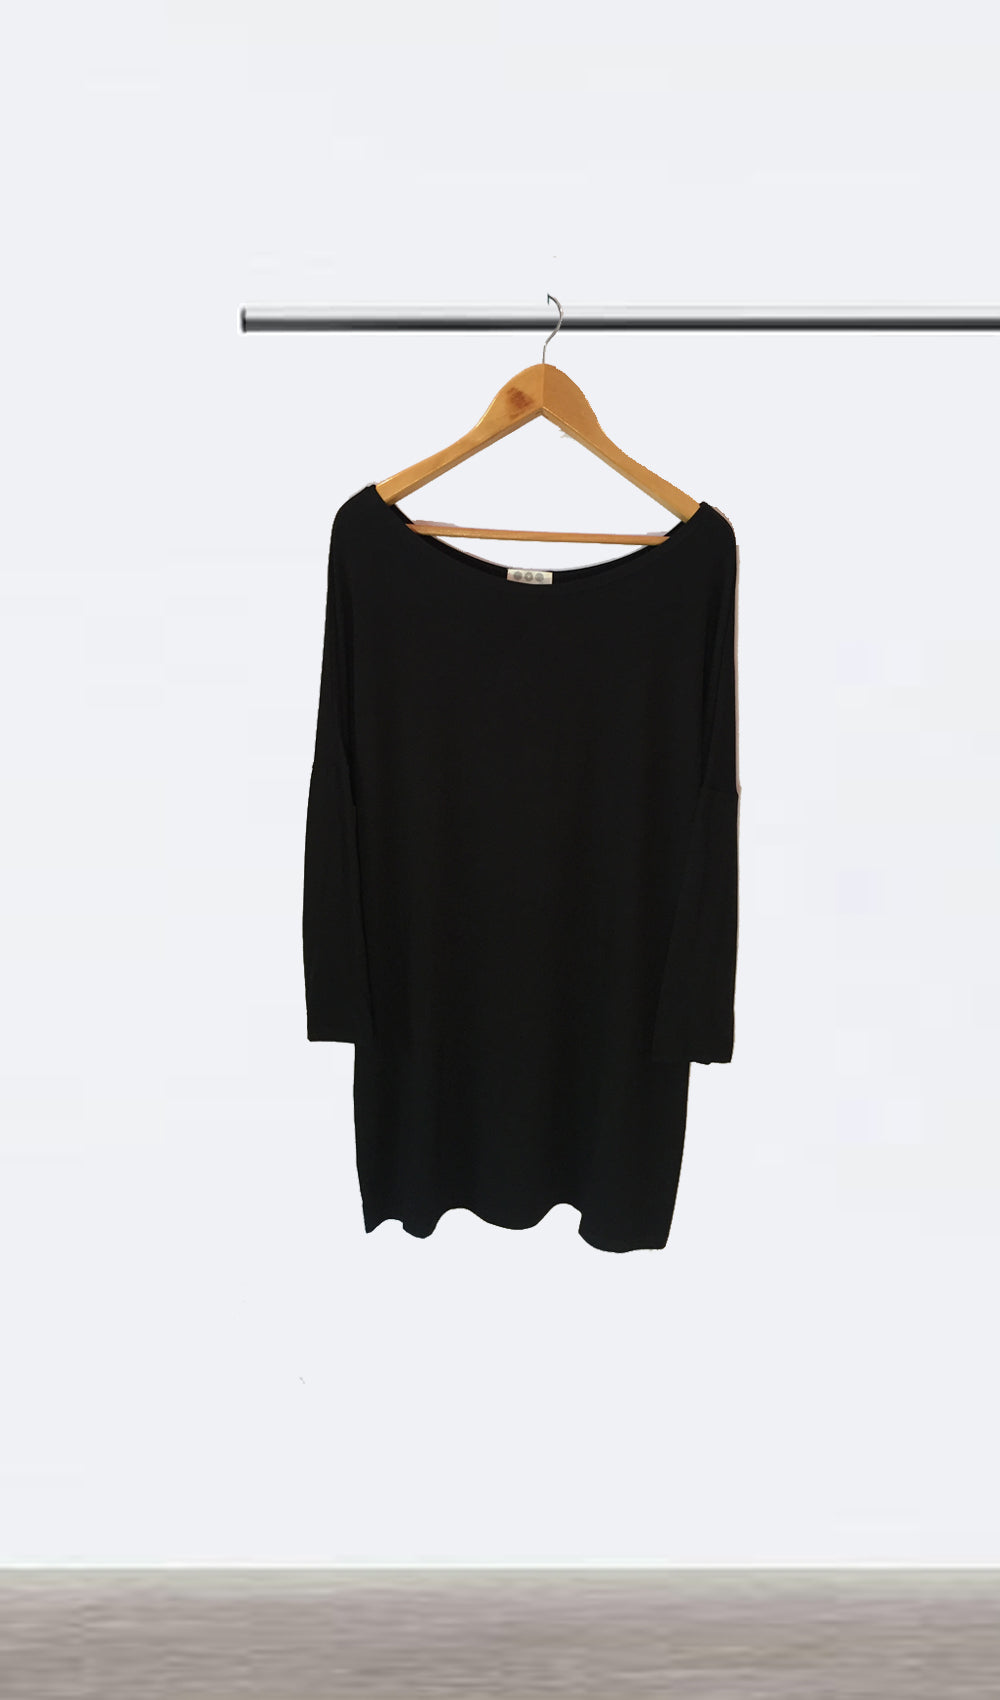 Ellipsis - The Black Boatneck Dress